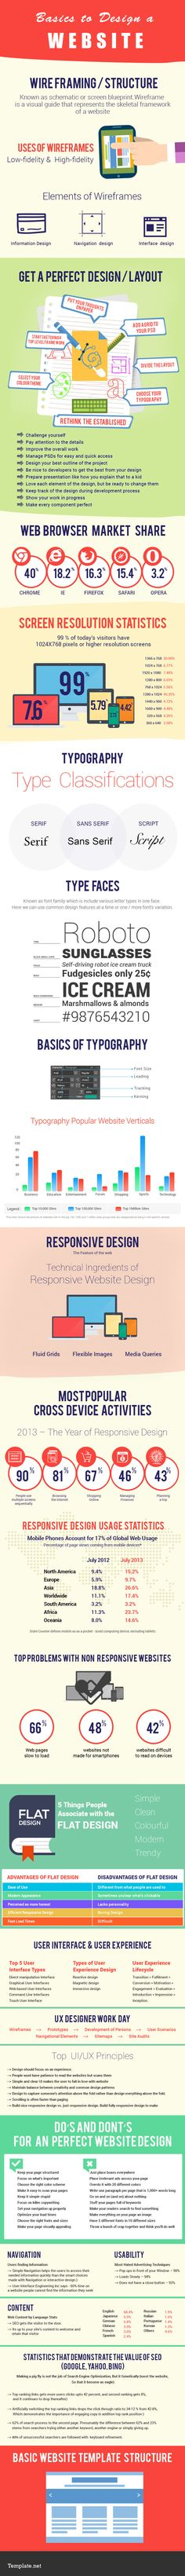 Basics to Design a Website – The Essentials of Successful Website Design (Infographic) | |Template